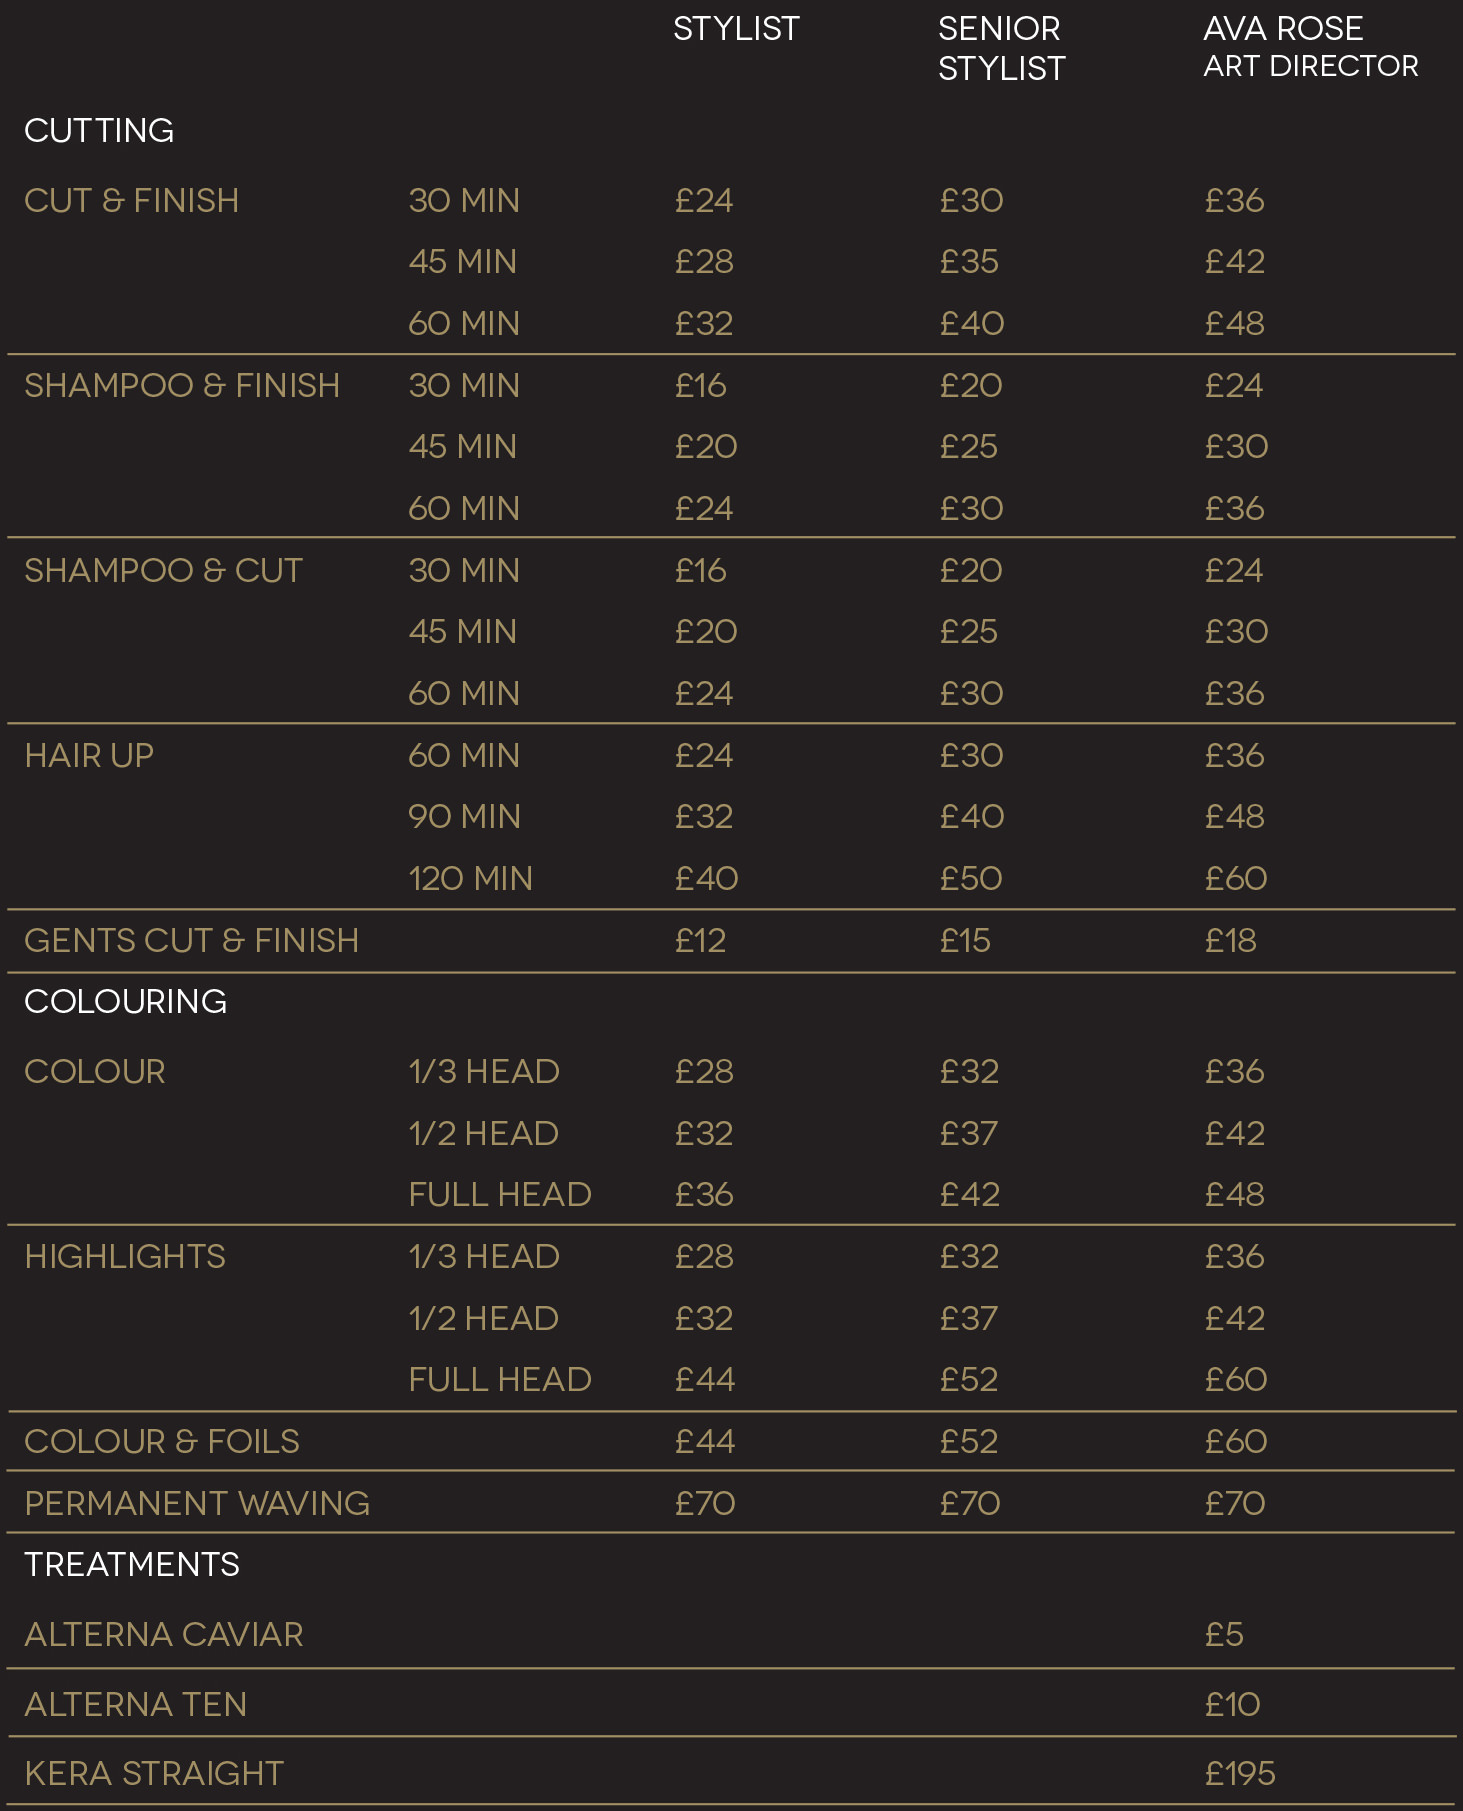 Ava rose hair salon at wrightington hotel country club wigan for Loreal salon price list